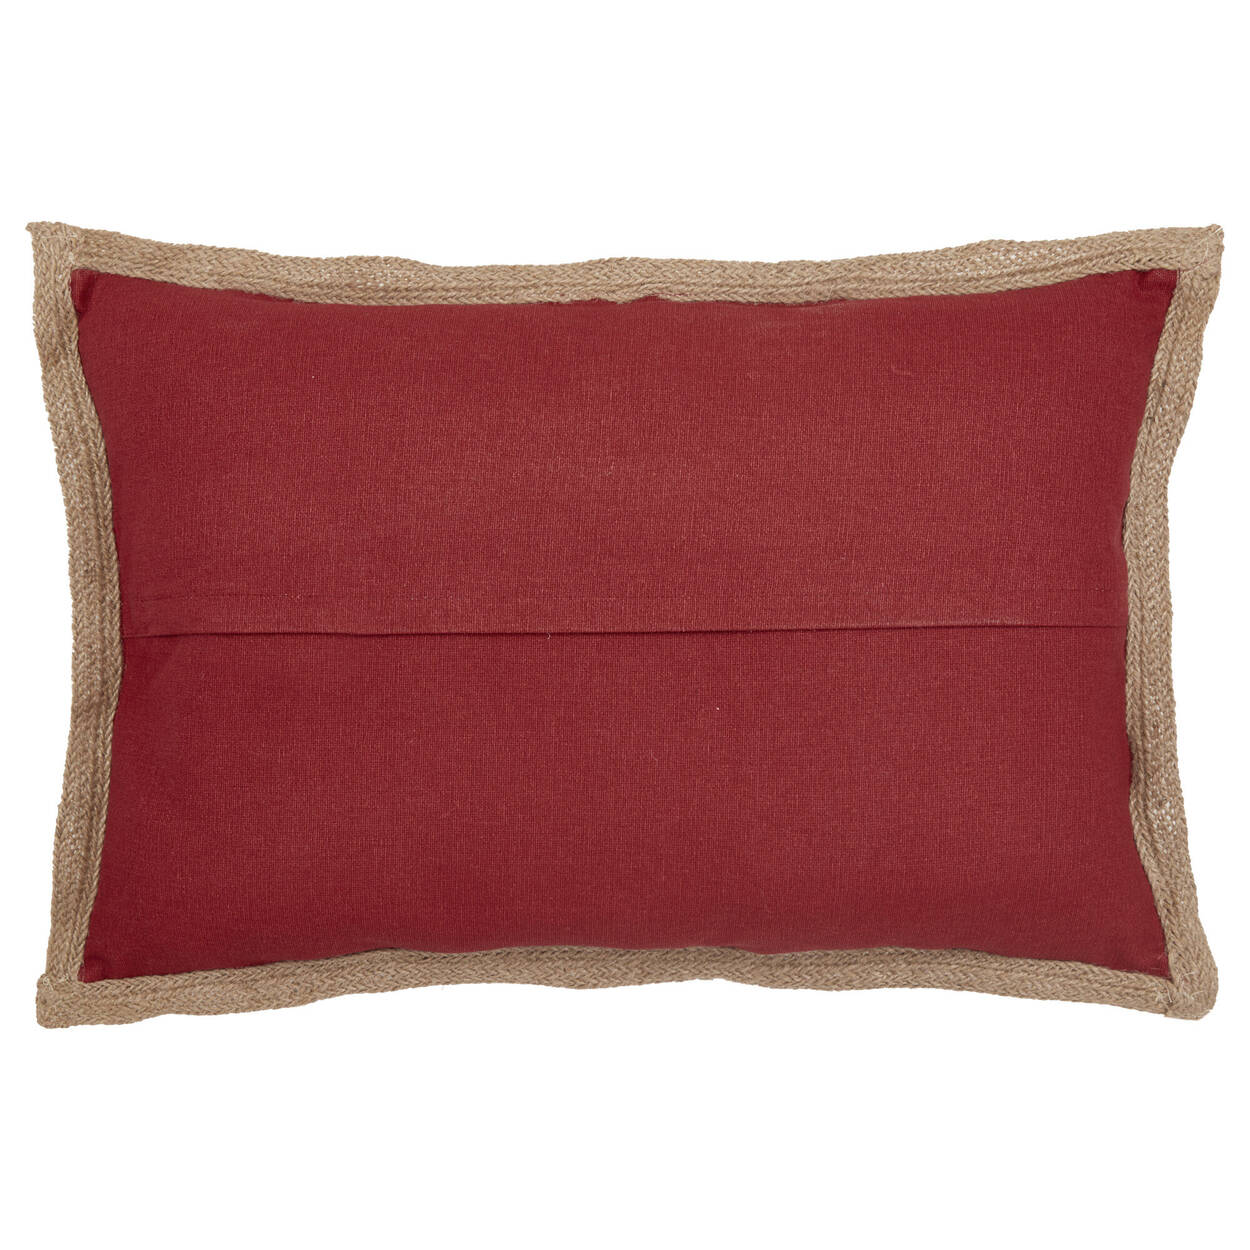 "Maison Decorative Lumbar Pillow 13"" X 20"""